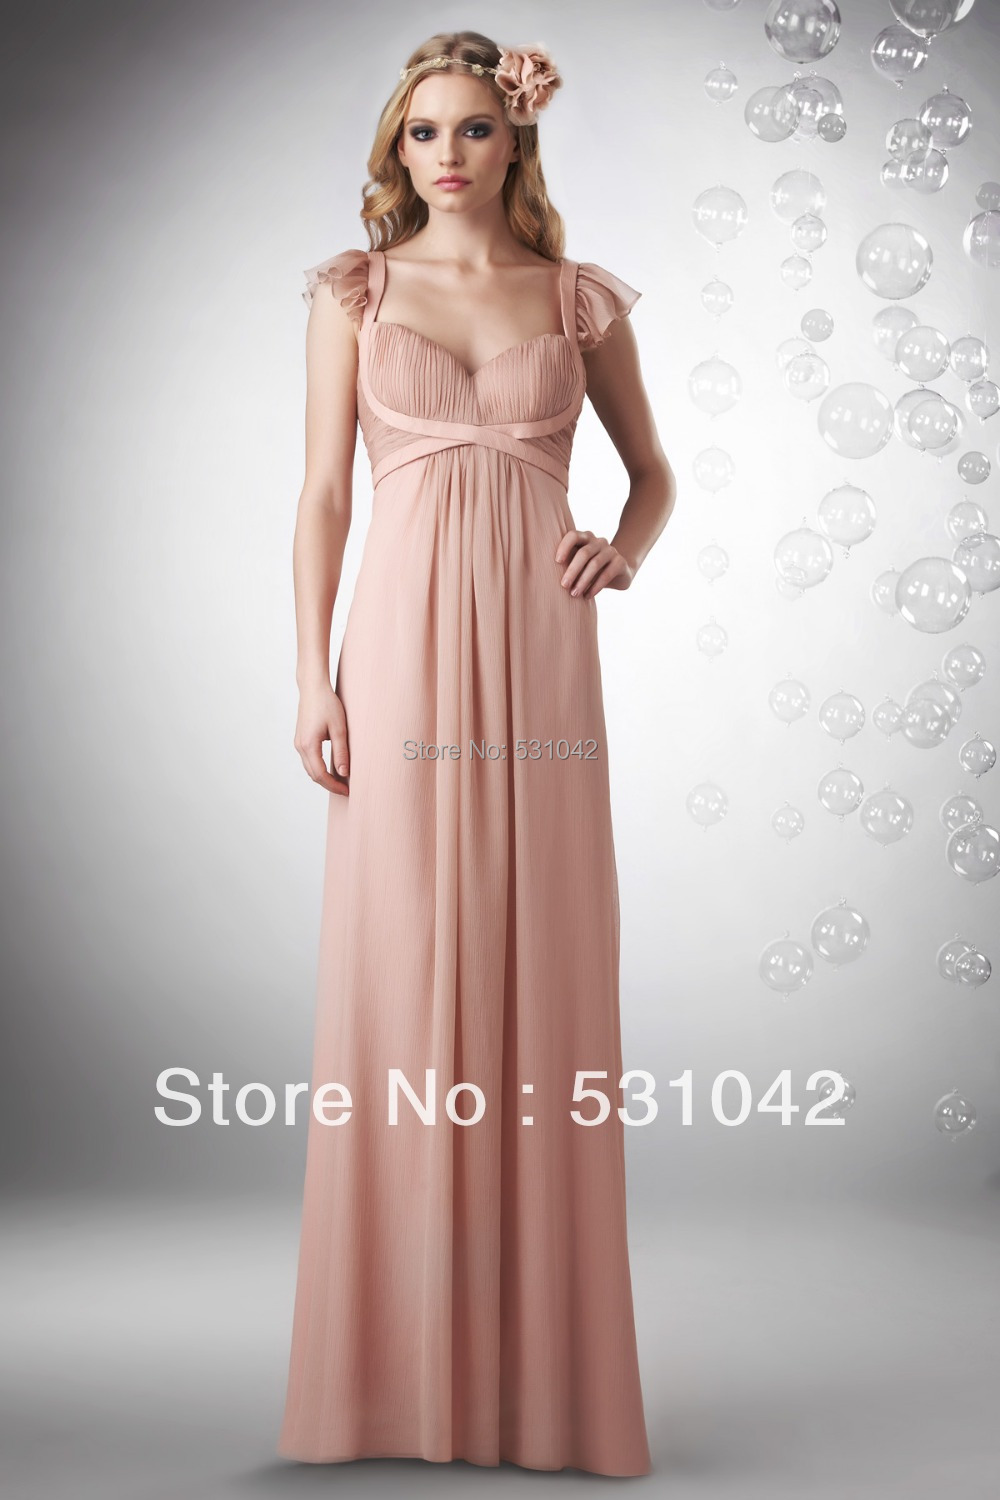 Online shop sweetheart cap sleeve pleated ruffles chiffon full online shop sweetheart cap sleeve pleated ruffles chiffon full length long blush bridesmaid dresses cheap wholesale guest gown ty590 aliexpress mobile ombrellifo Choice Image